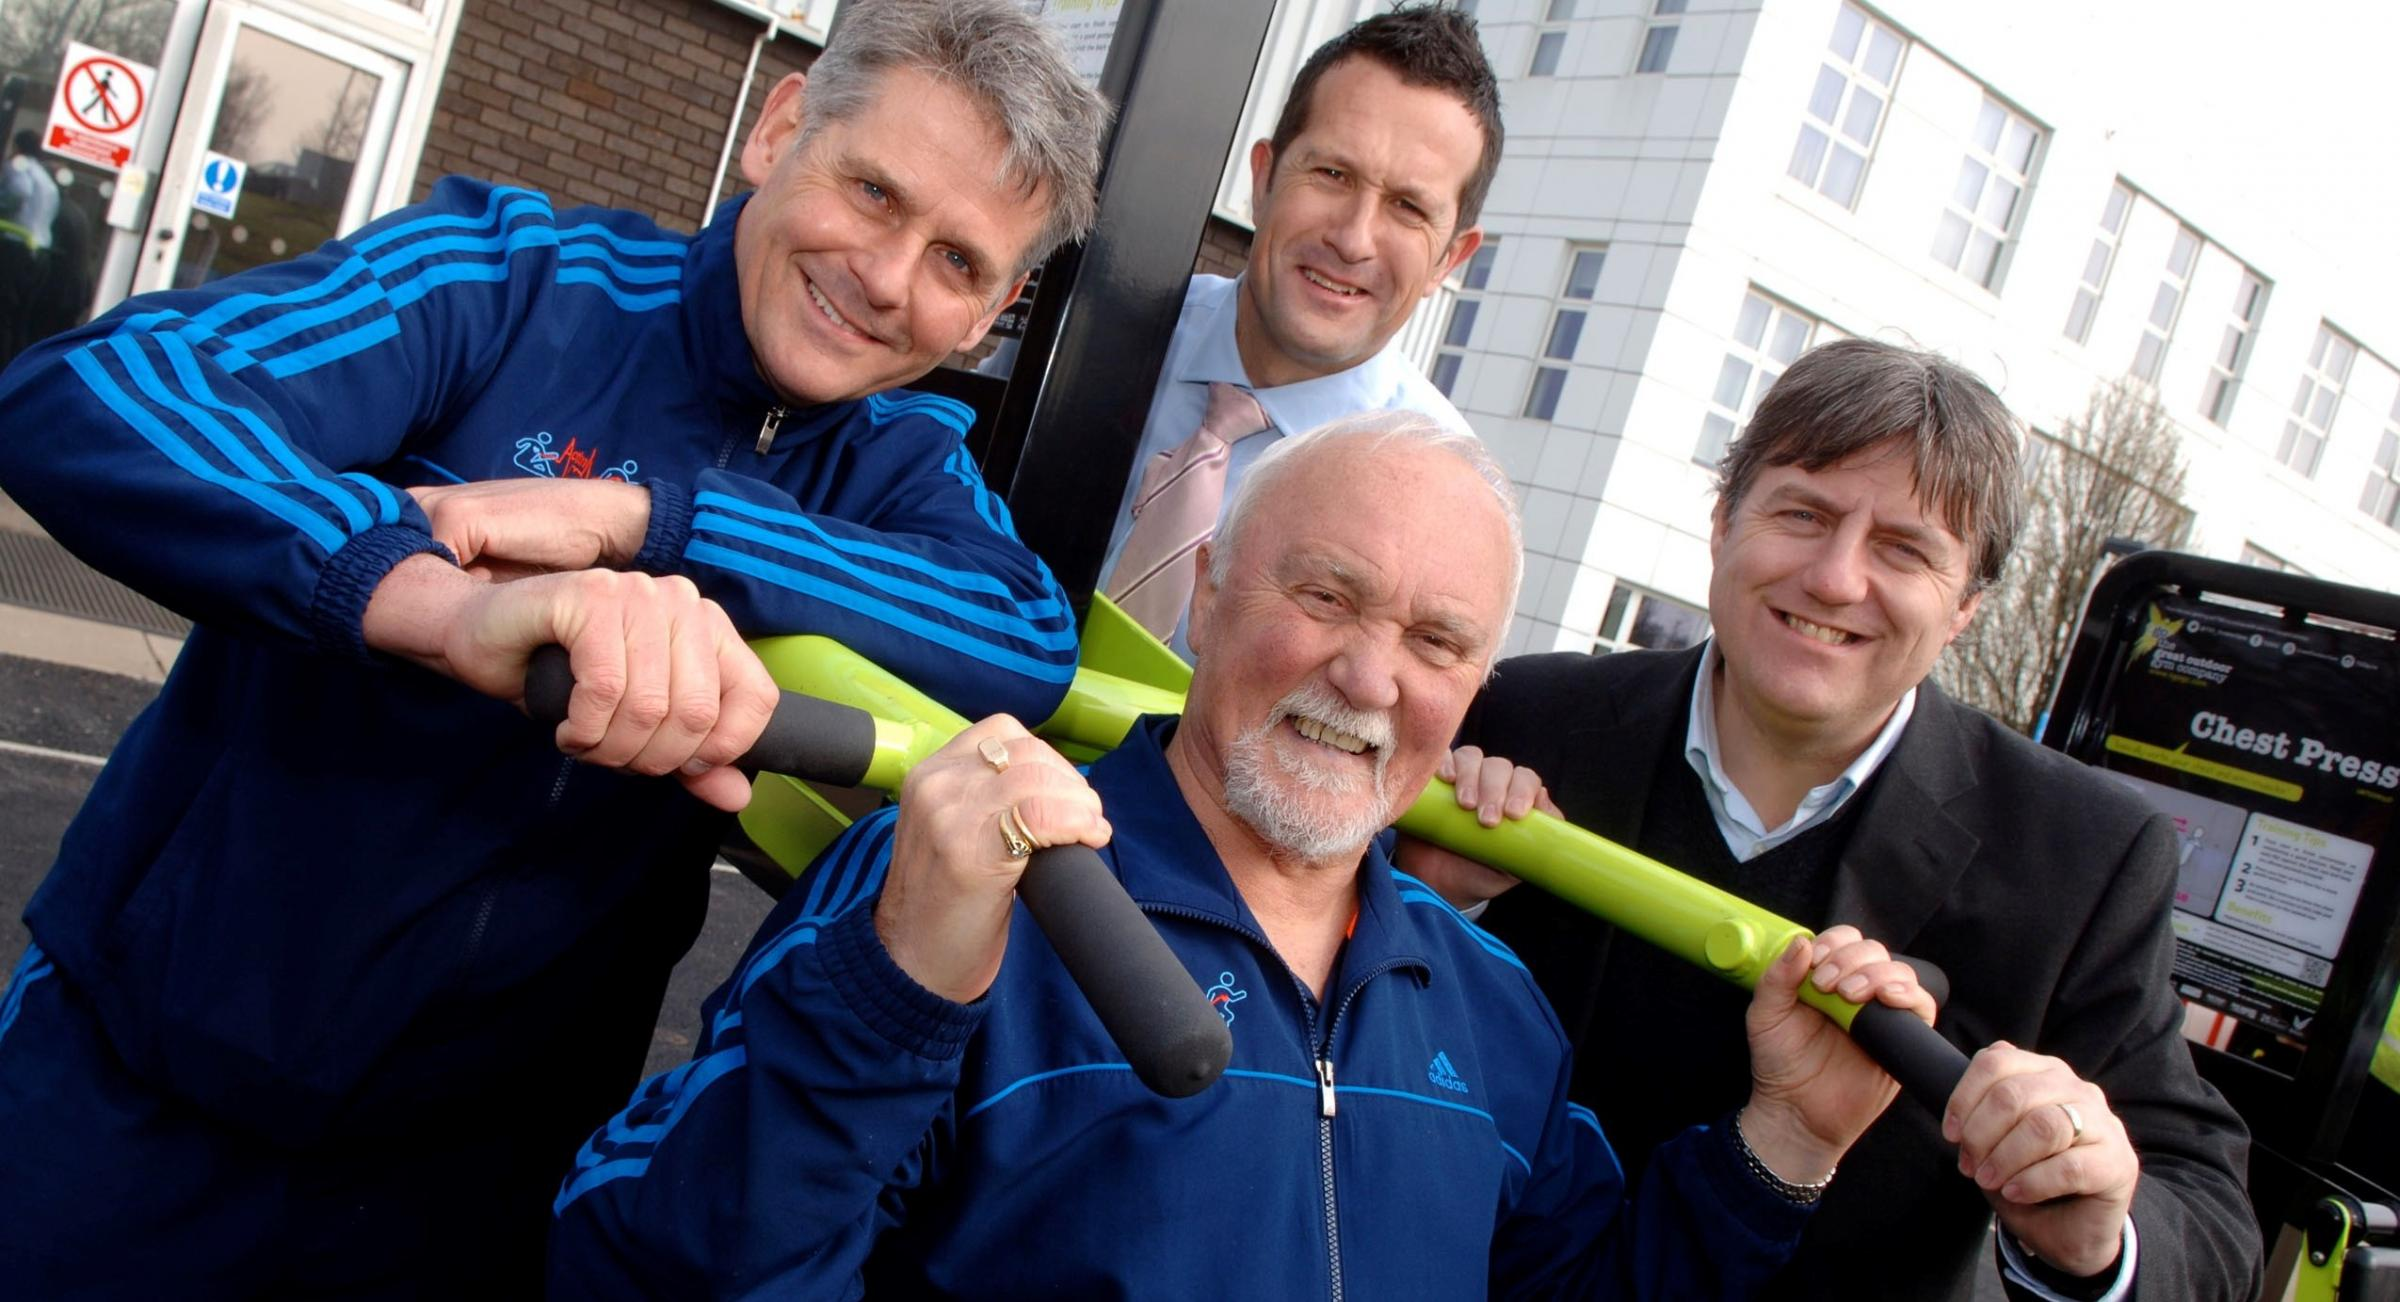 Action Heart director Russ Tipson, Dean Hill from Office of Public Health, Cllr Stuart Turner and